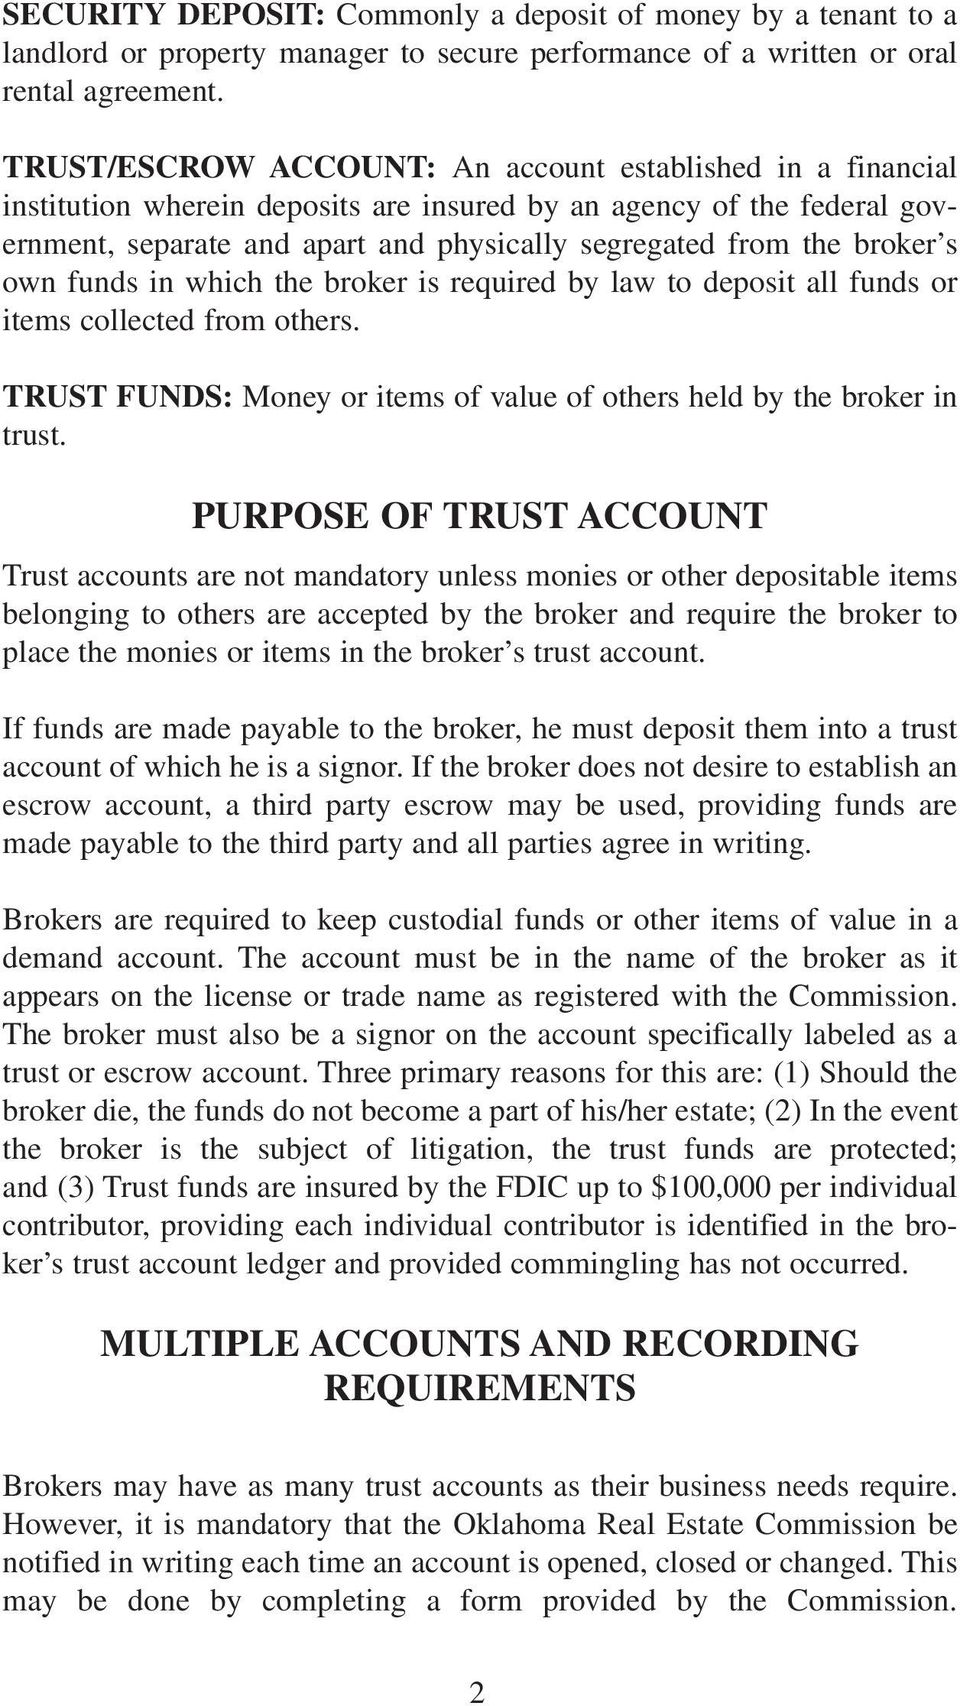 broker s own funds in which the broker is required by law to deposit all funds or items collected from others. TRUST FUNDS: Money or items of value of others held by the broker in trust.